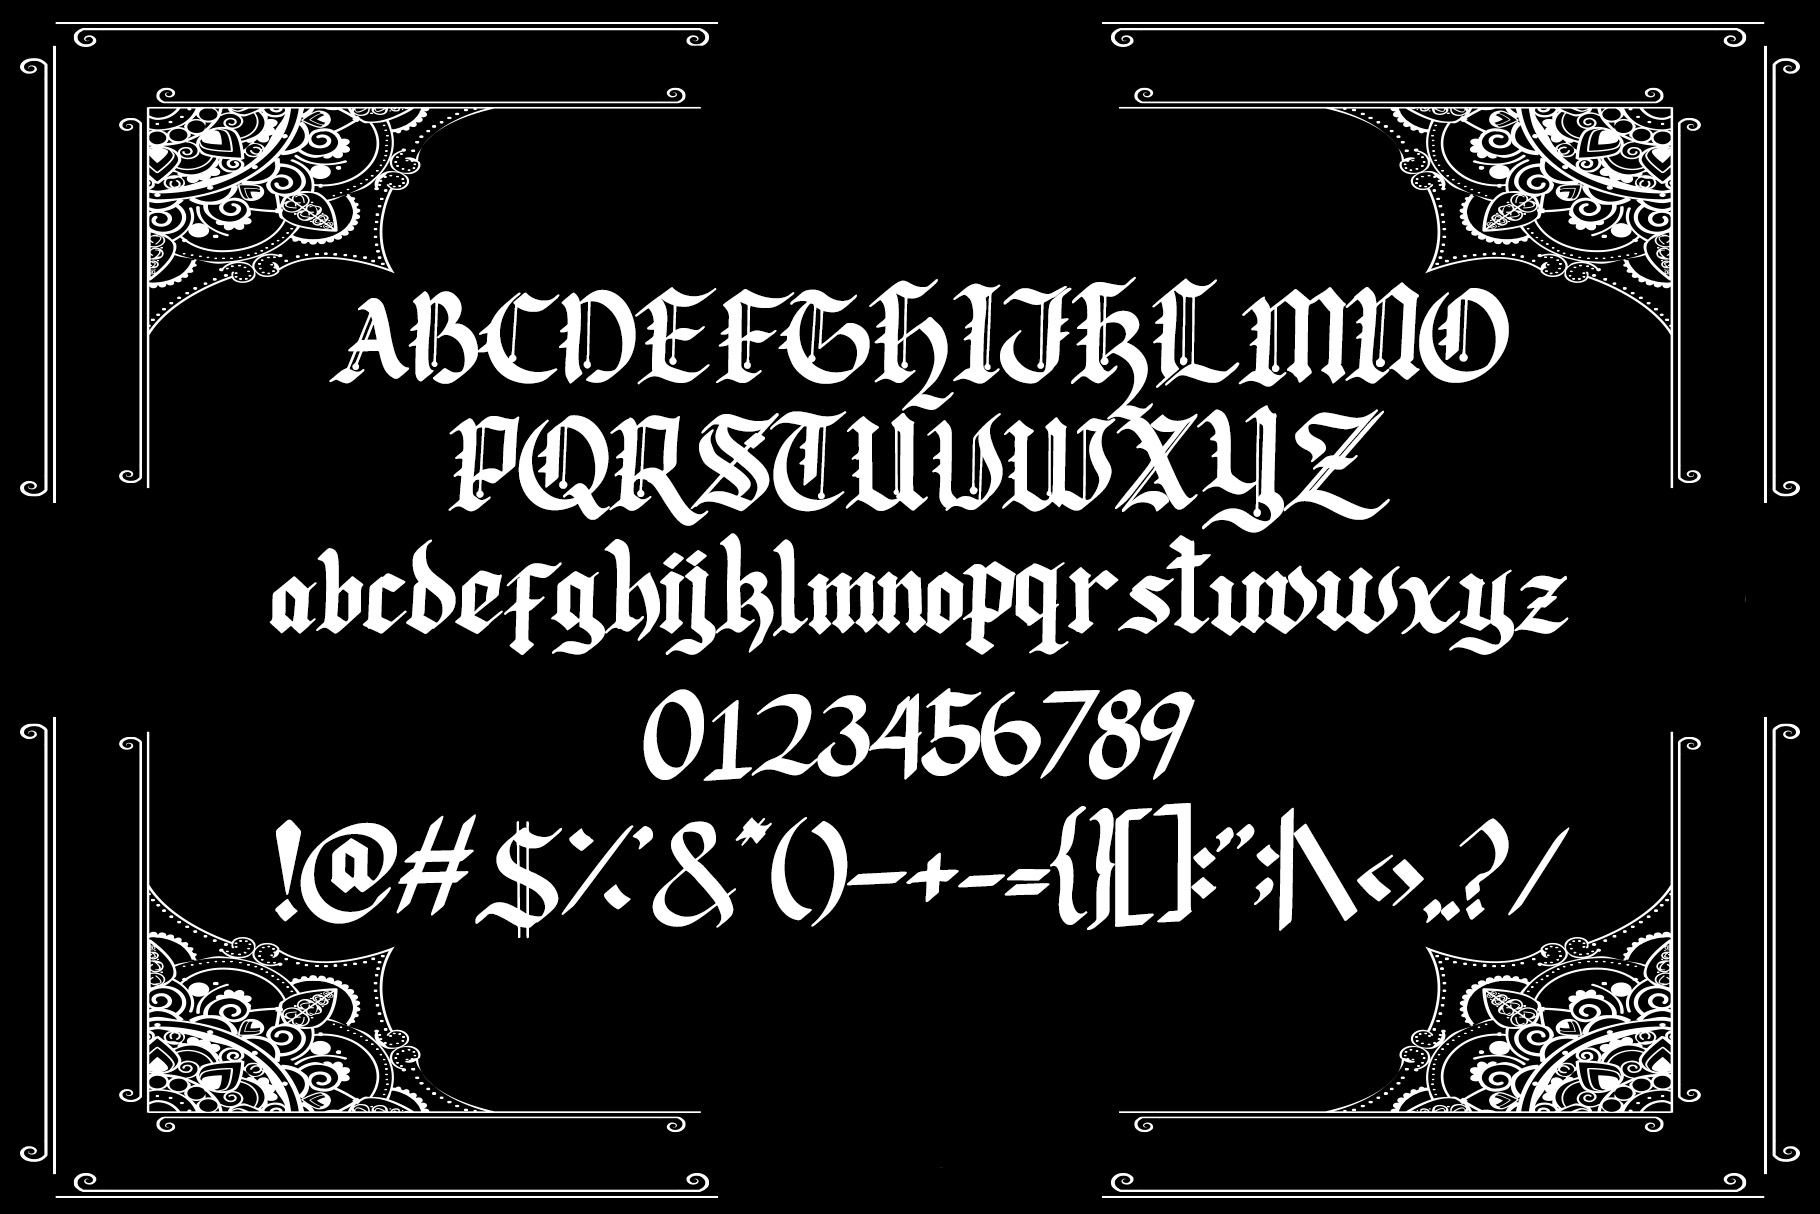 Lodeh - Black Letter Typeface example image 4